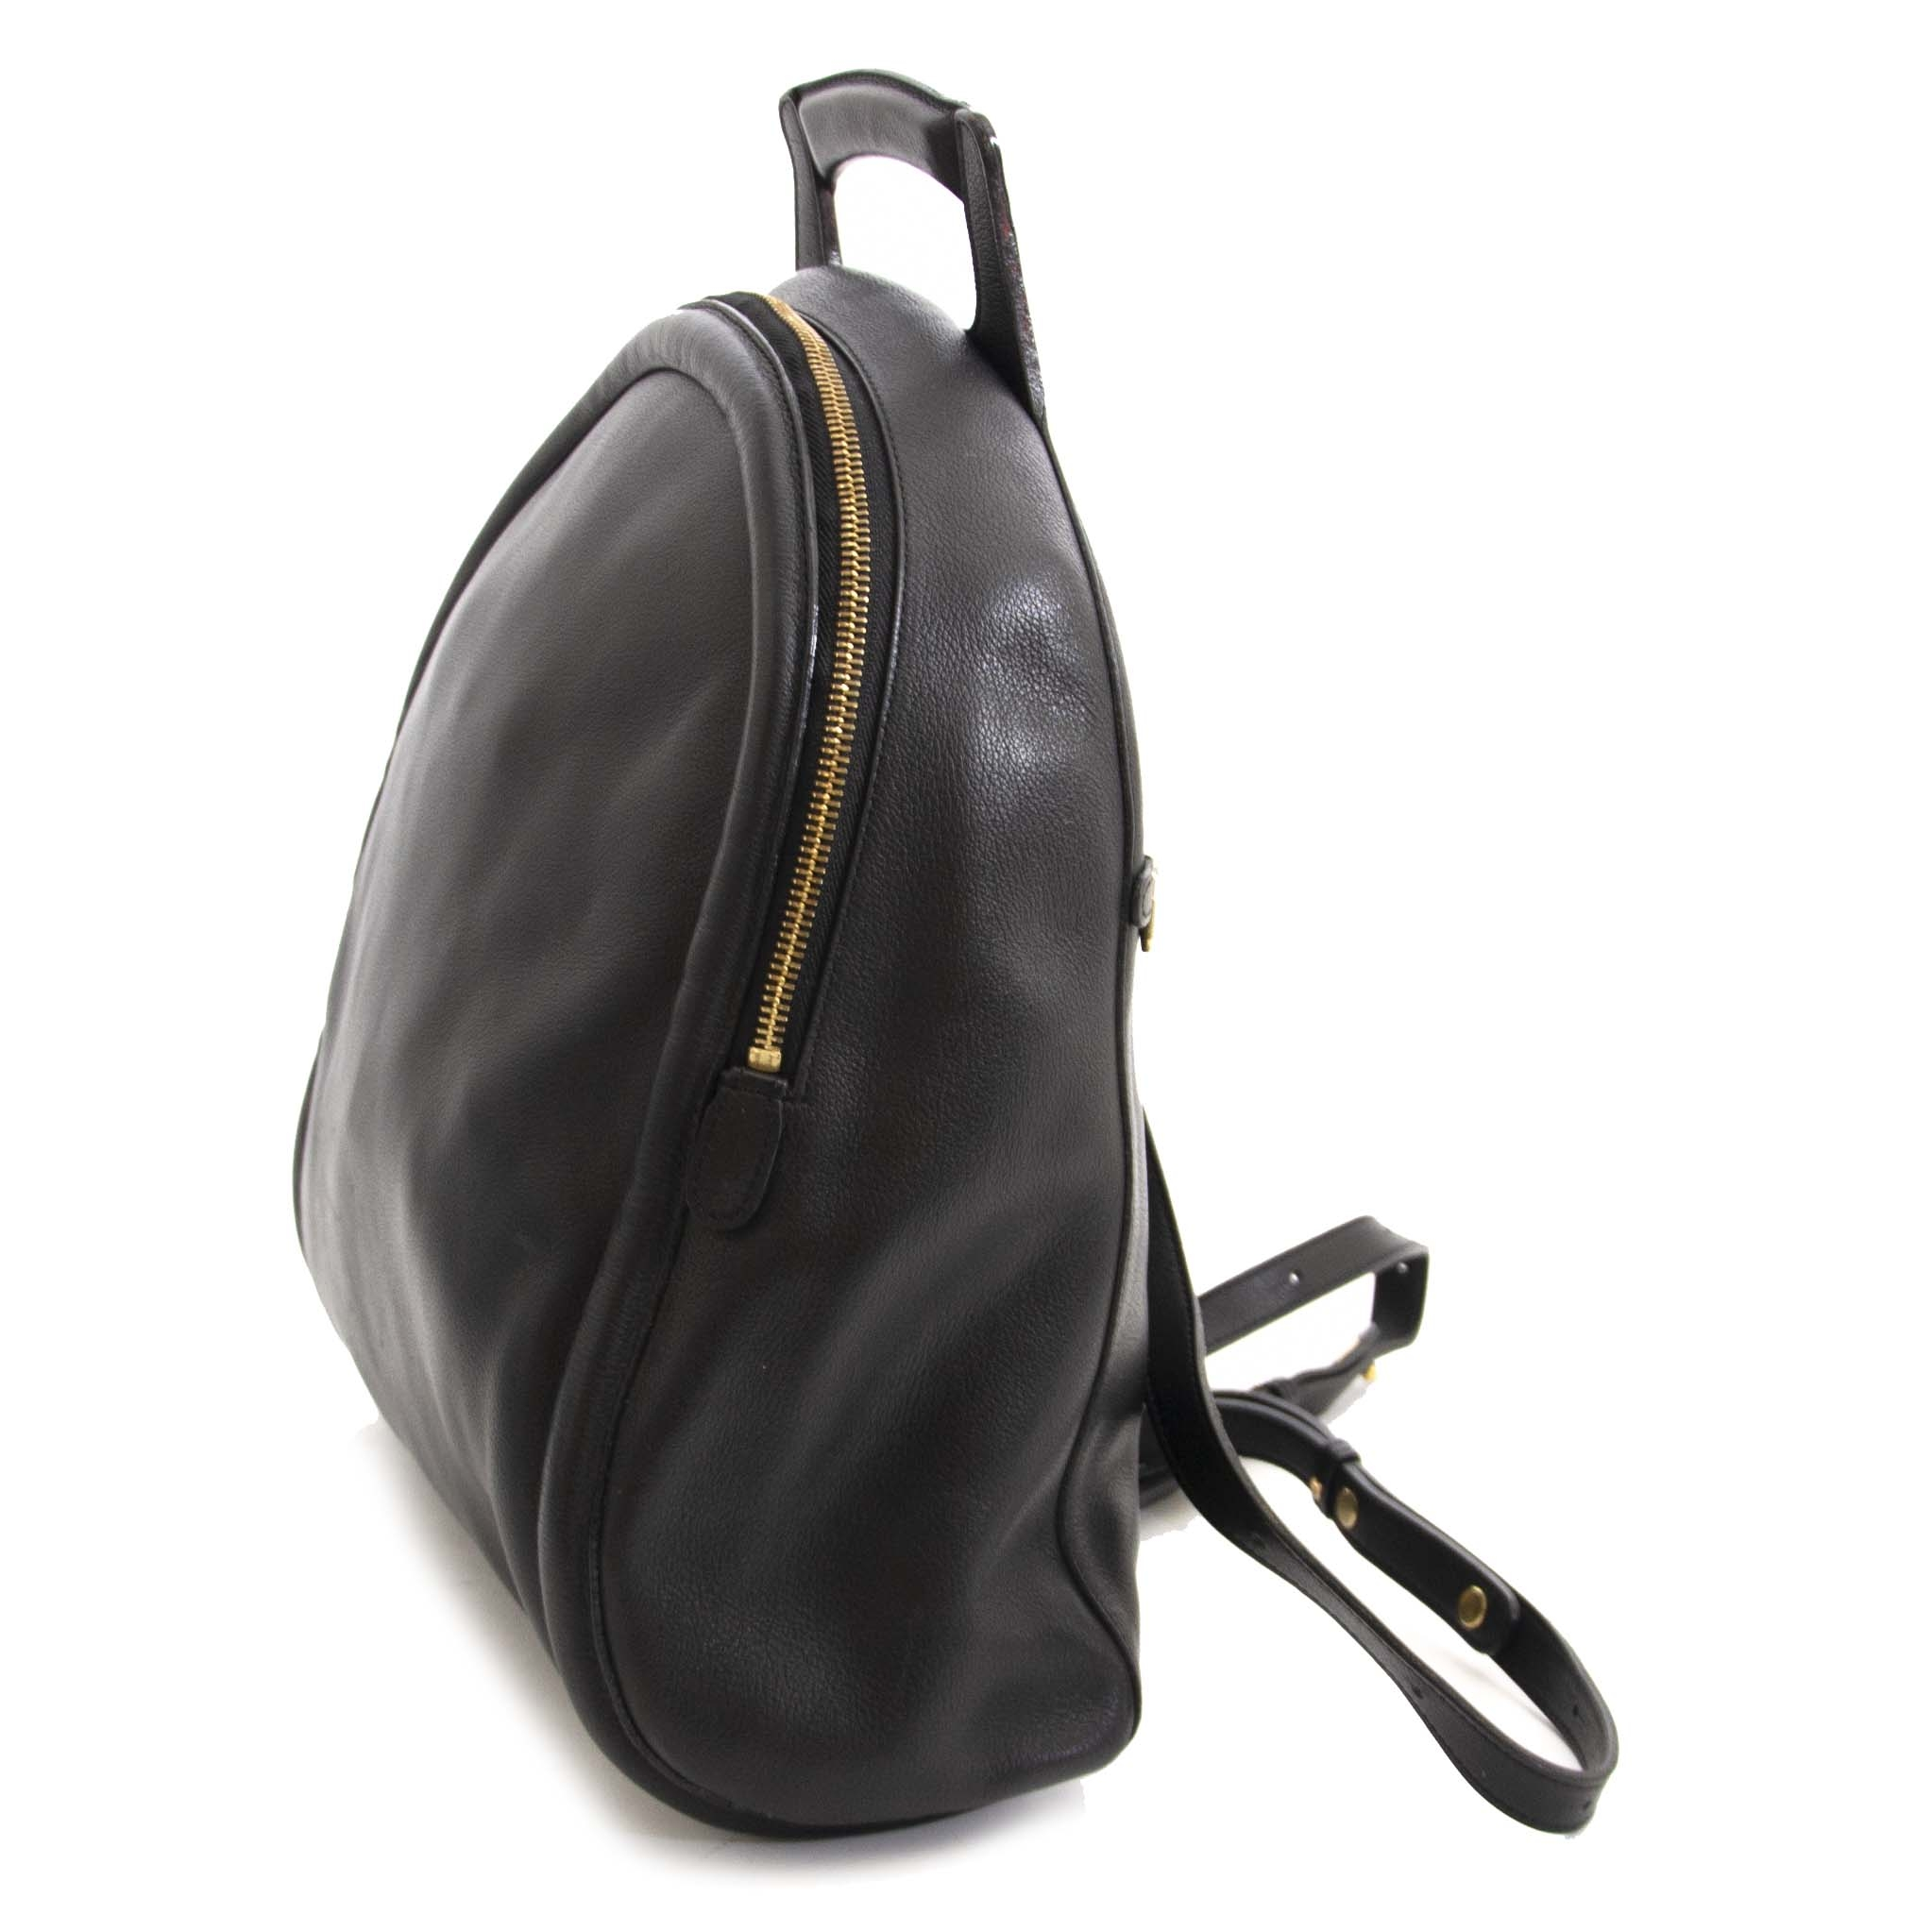 Authentic second hand vintage Delvaux Black Leather Backpack at online webshop LabelLOV